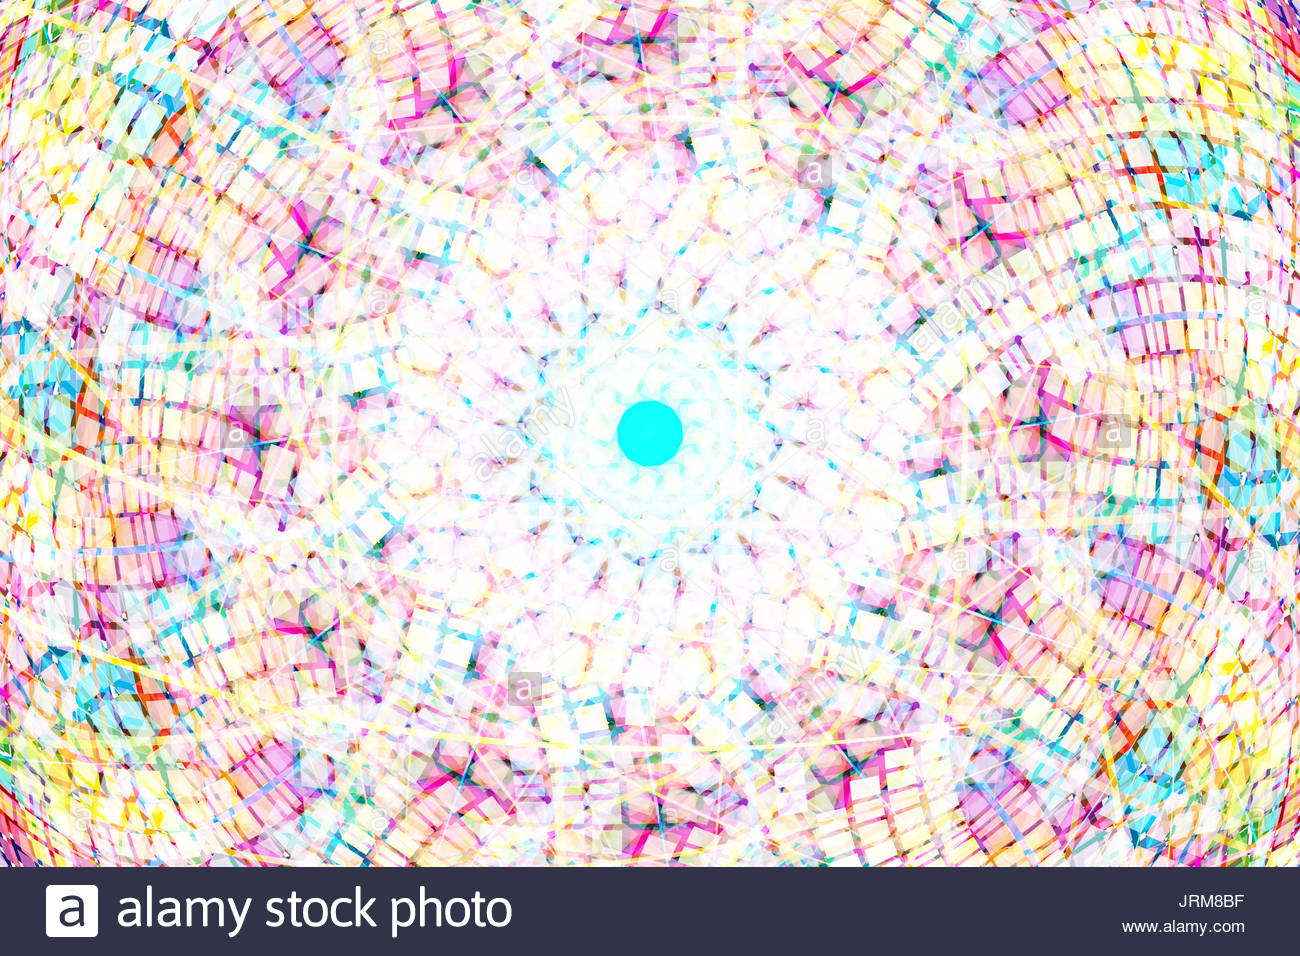 Abstracts and backgrounds background color is composed of colorful dream fragments - Stock Image